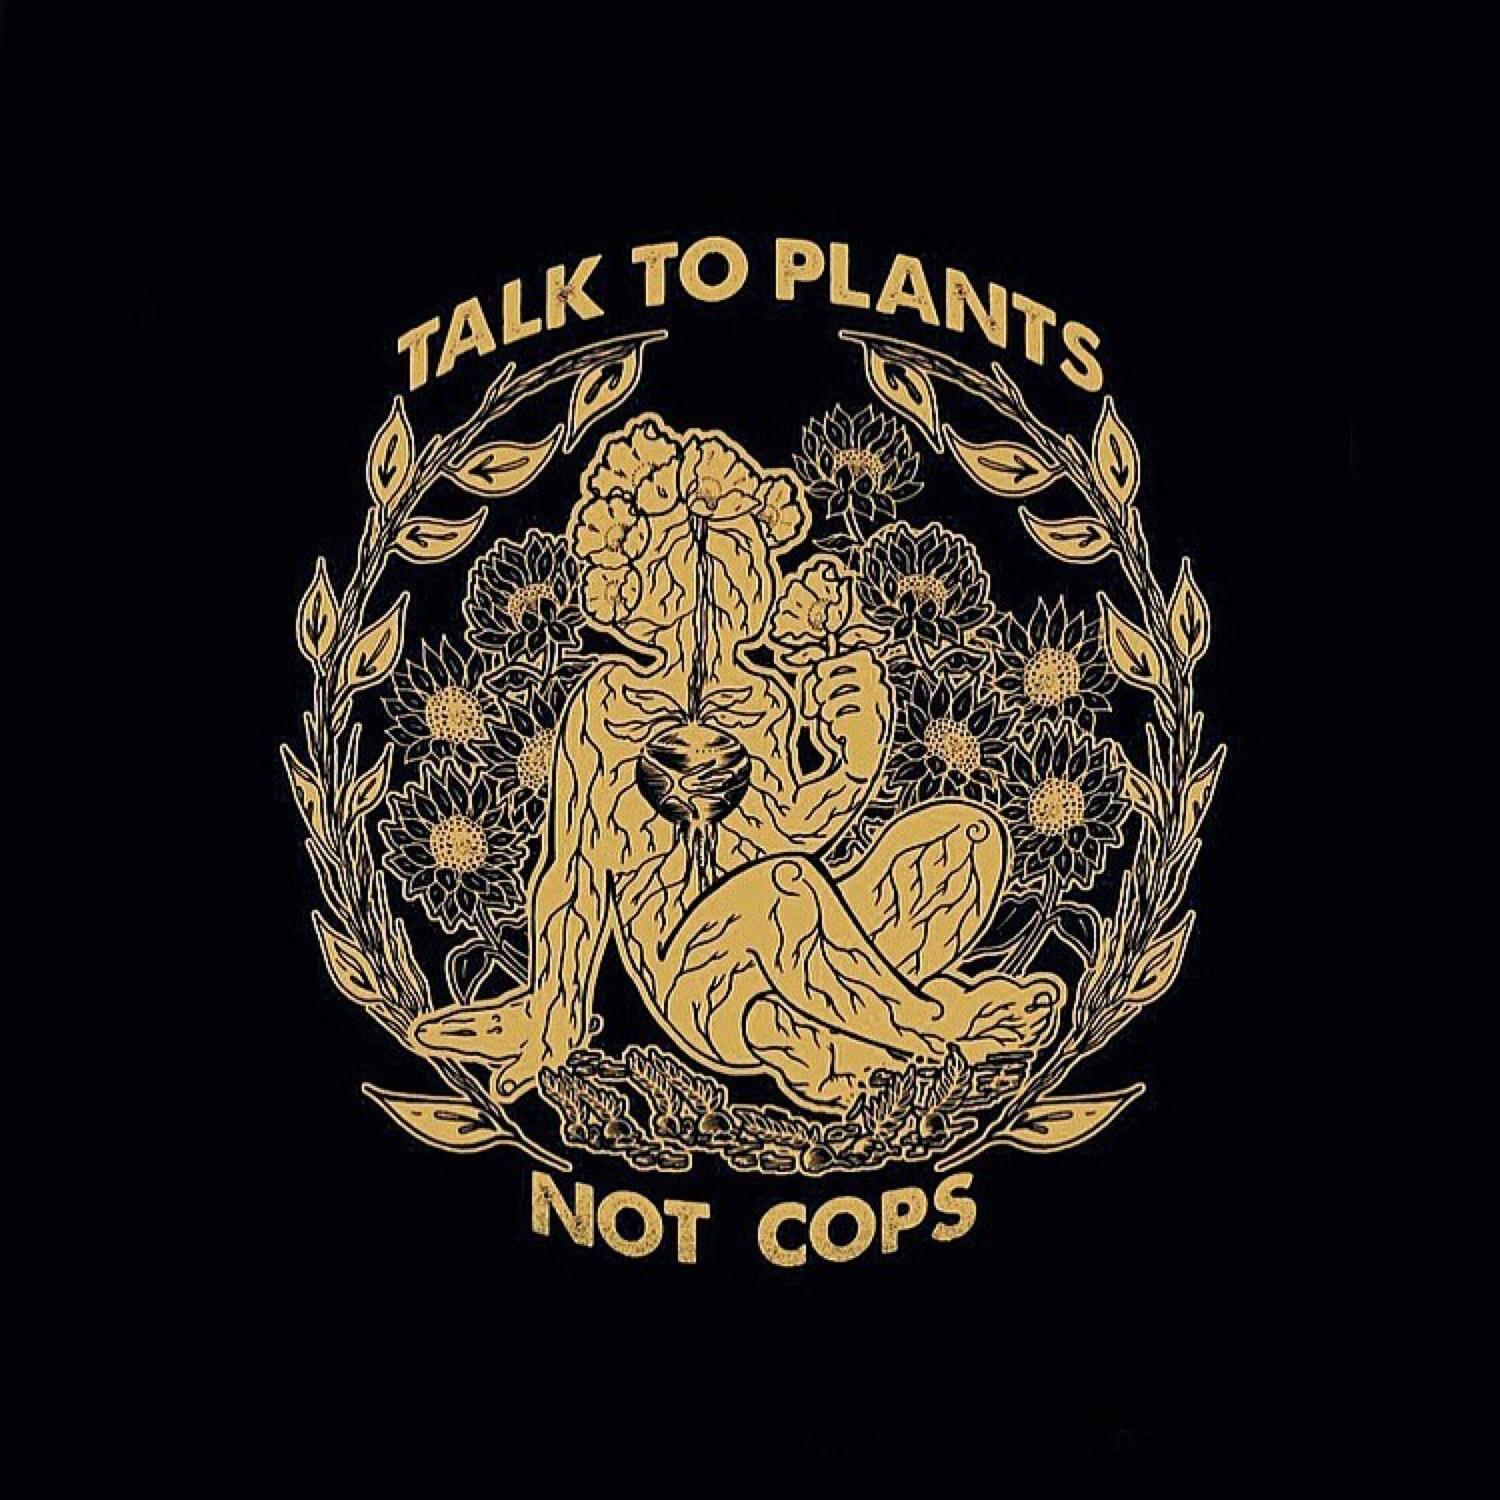 "Art by @ nobonzo   [image description: ""talk to plants, not cops"" with drawing of anthropomorphised plant-like human in yellow surrounded by flowers on a black background]"